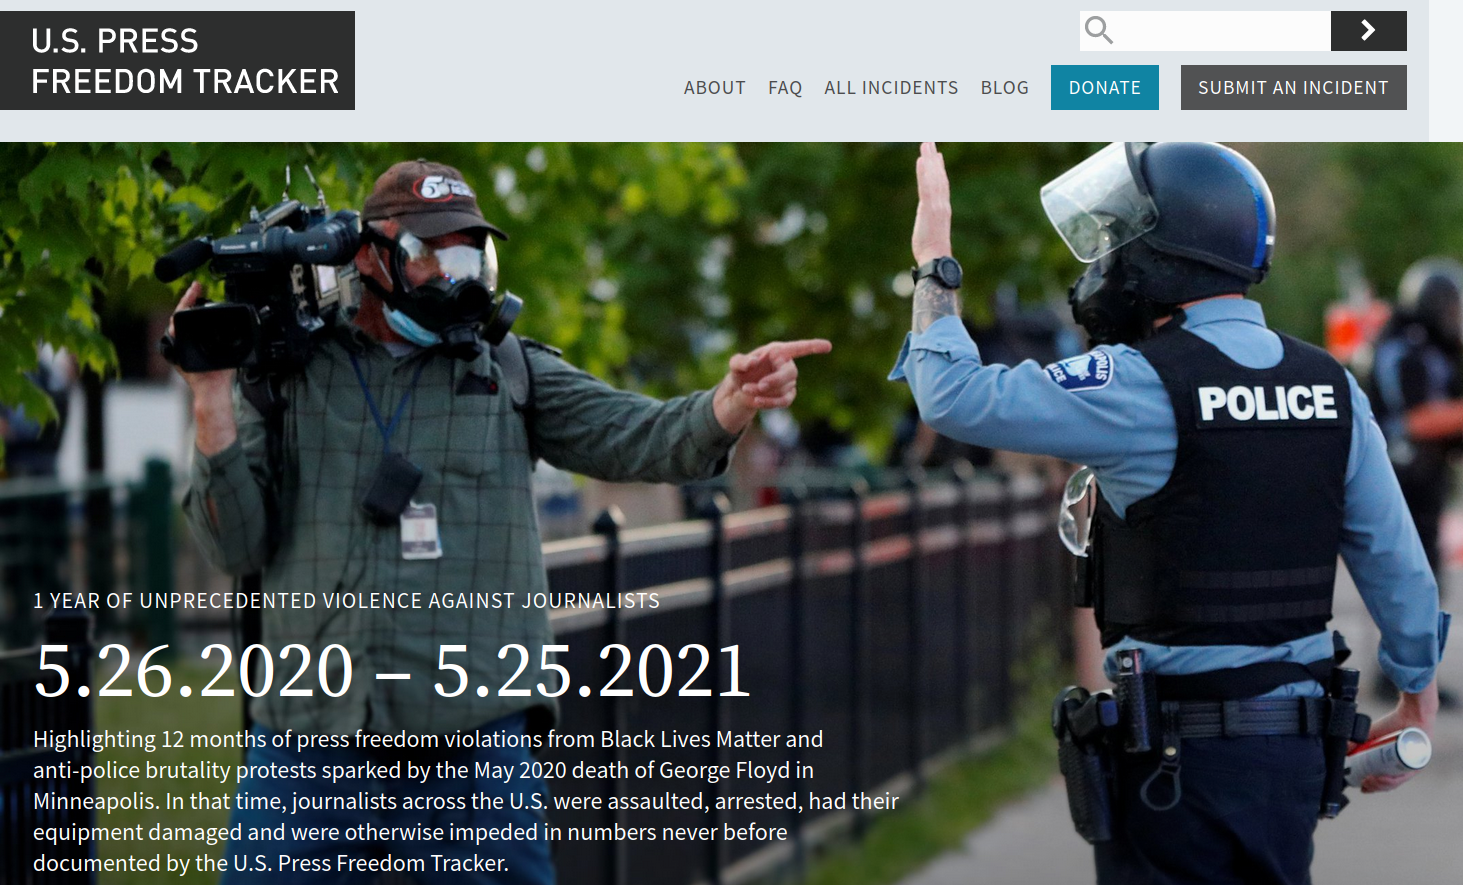 U.S. Press Freedom Tracker topic page: 1 year of BLM protests